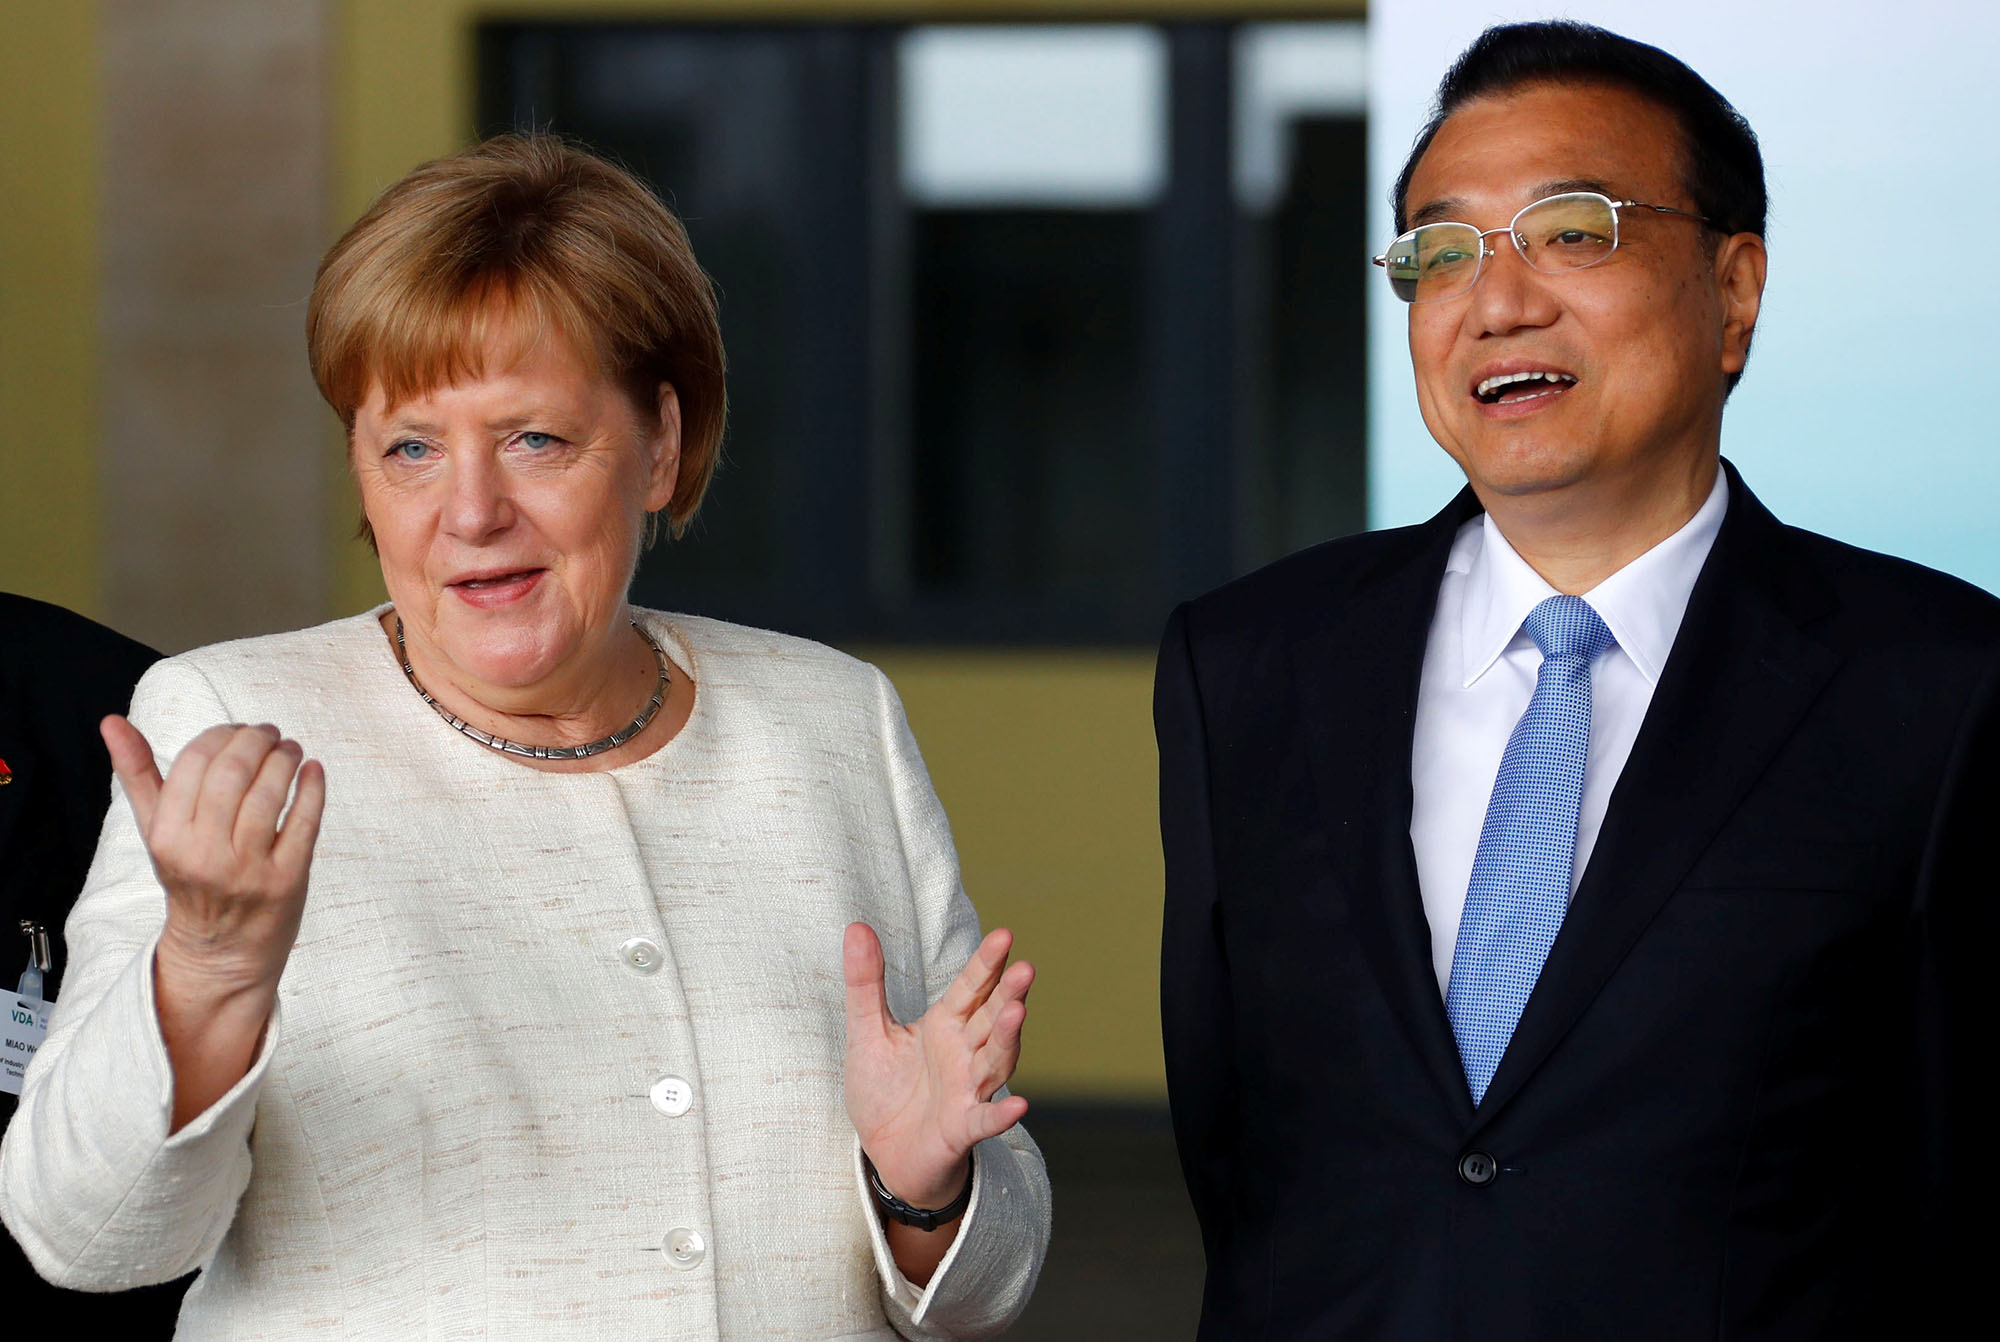 US Ambassador to Germany Calls for United Front on China